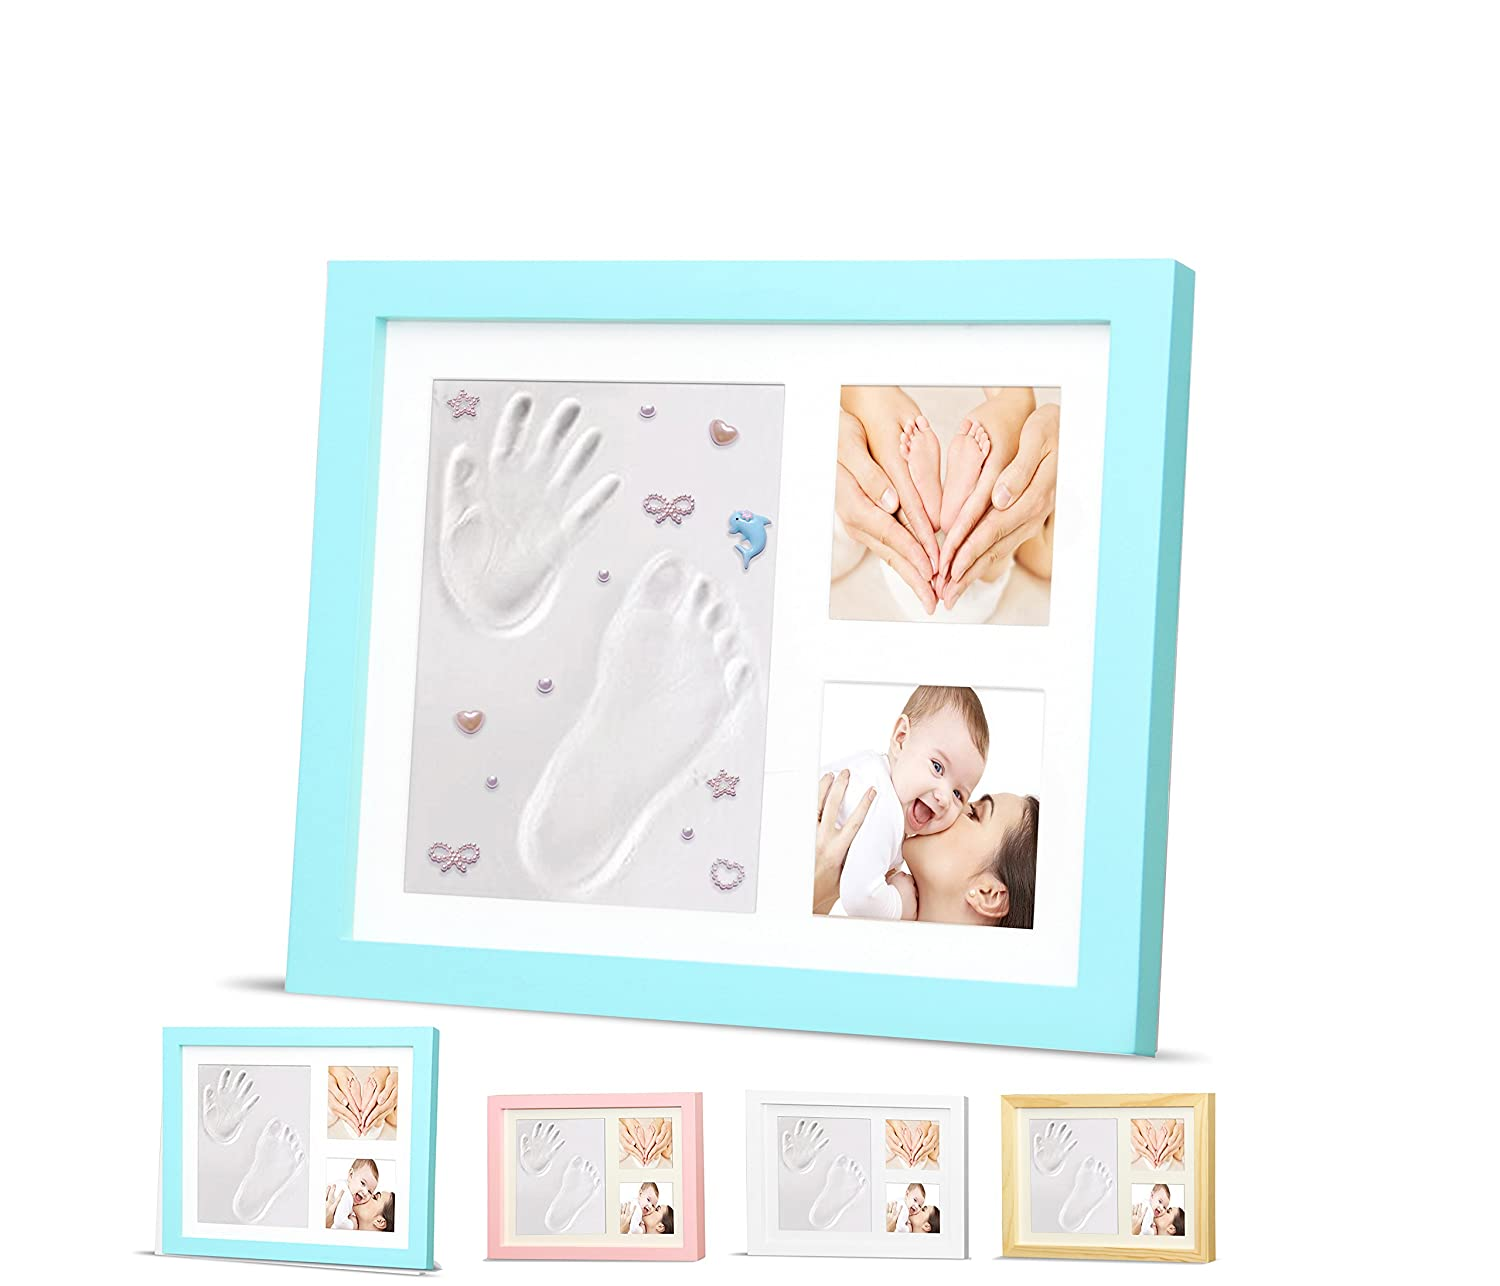 Ninos Baby Handprint, Footprint and Wooden Picture Frame Kit – Memory Maker for Growing Infants and Toddlers – Soft, Nontoxic Clay – Best Baby Shower or Maternity Gift (Pink)